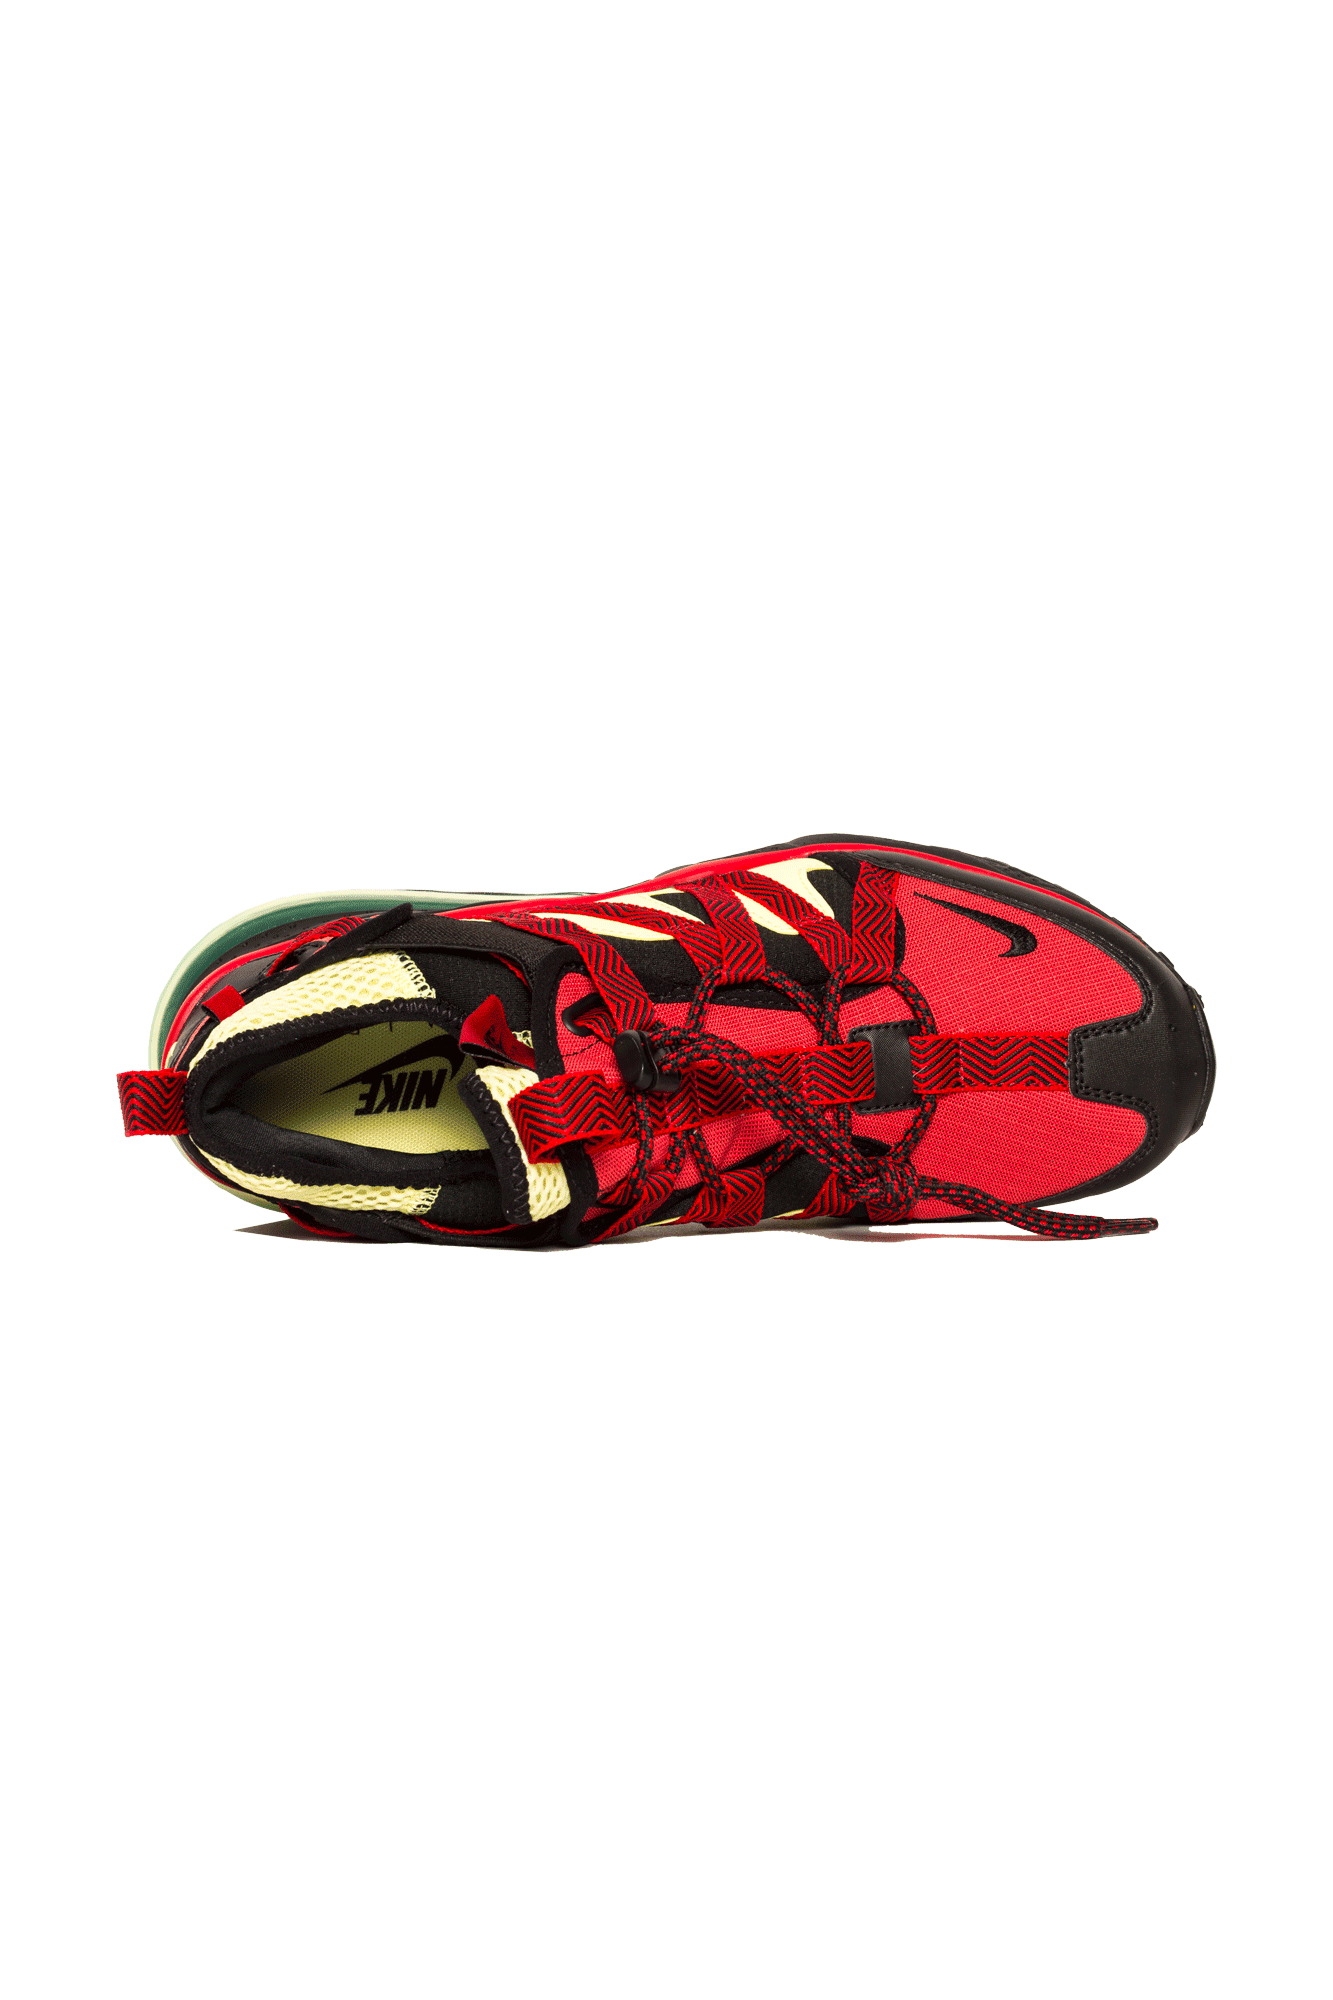 Nike Sneakers Air Max 270 Bowfin Red AJ7200 #000#003#8 One